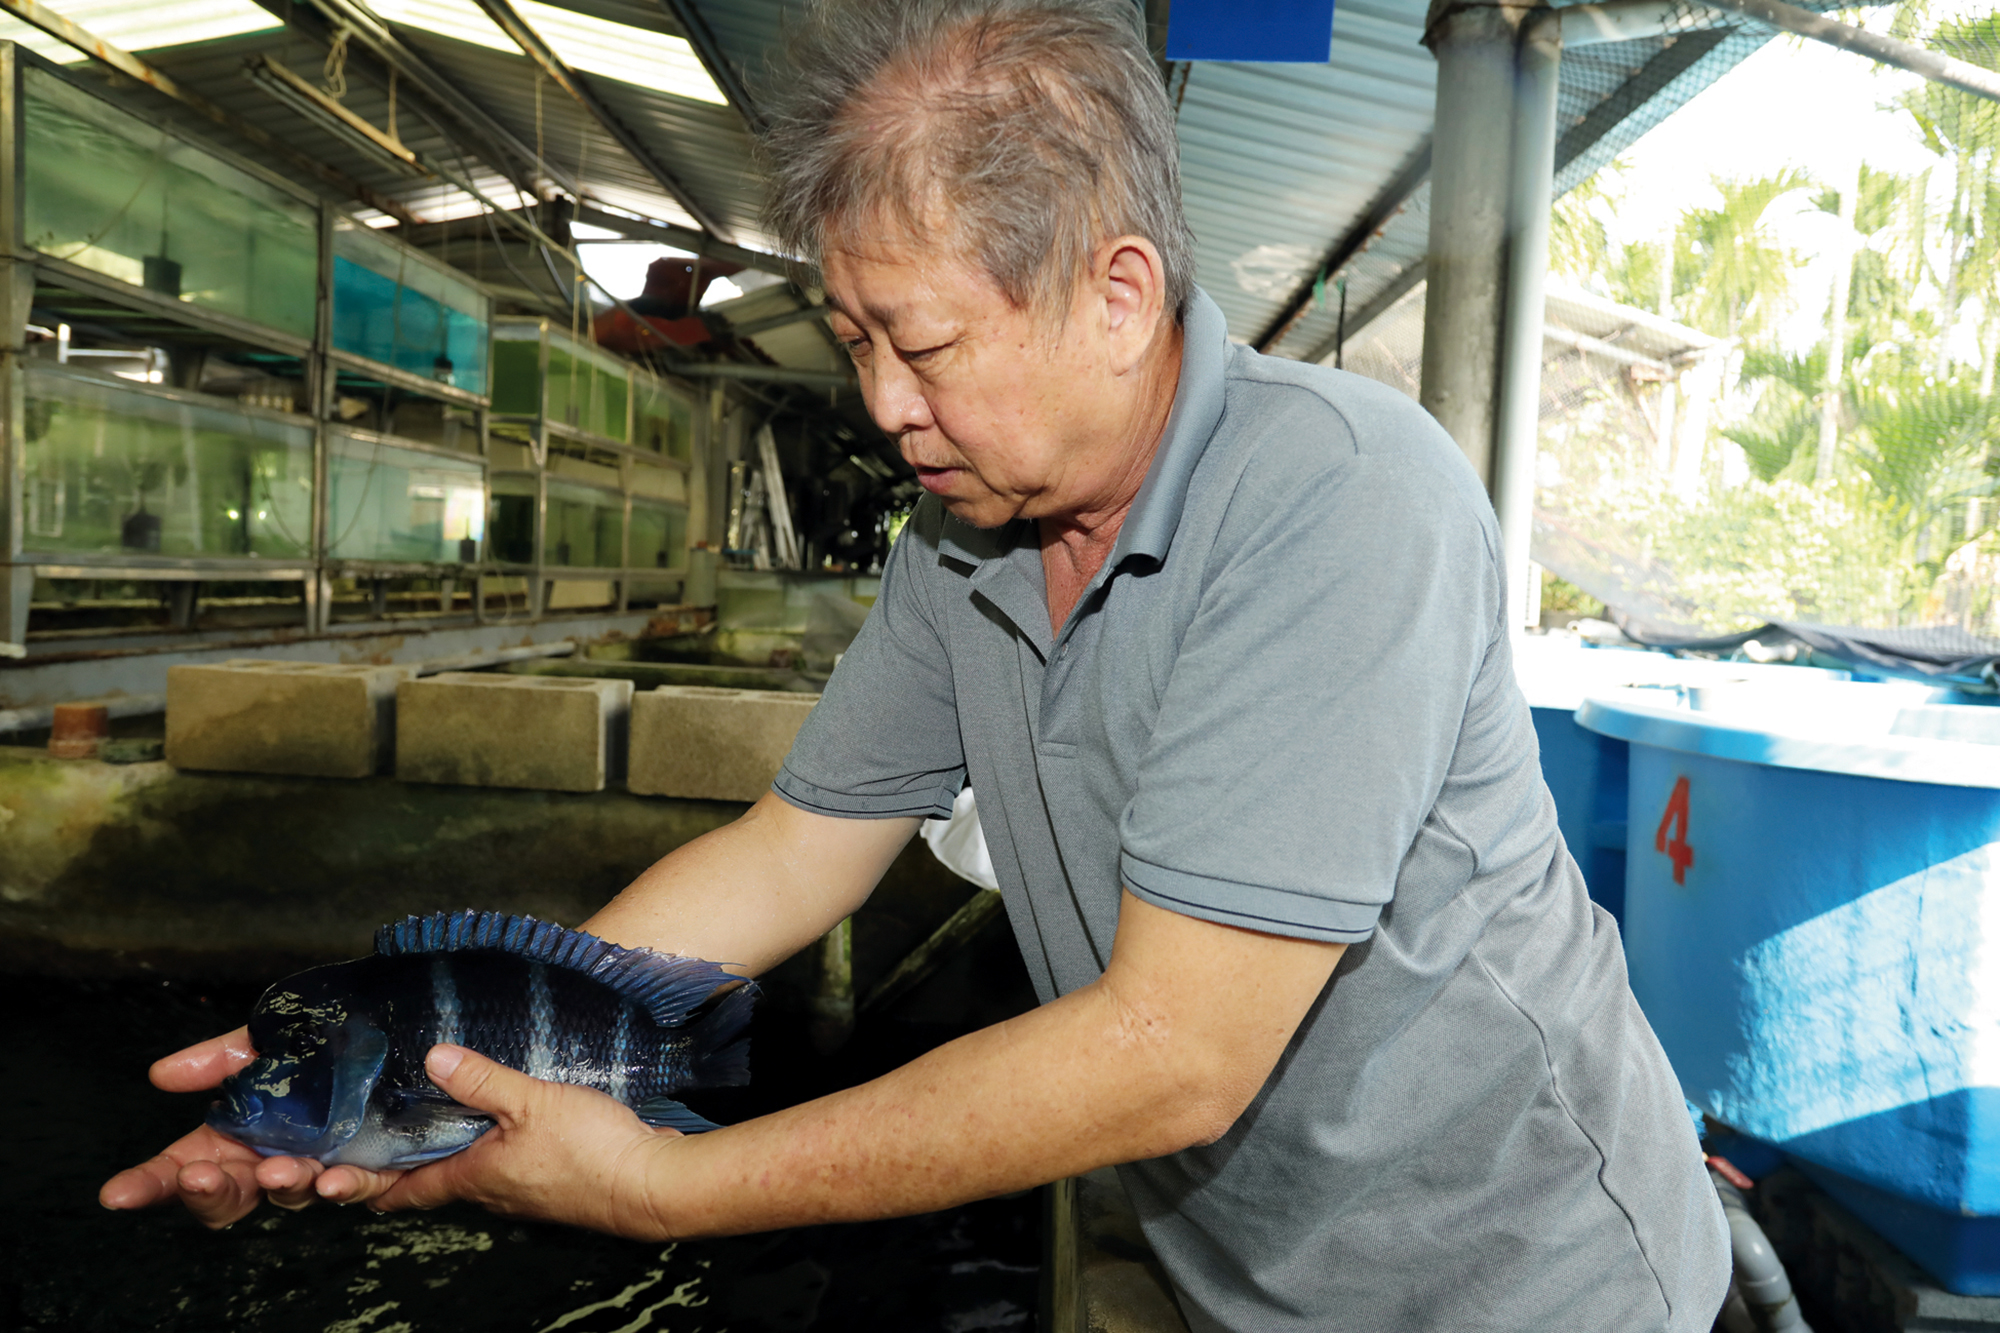 Lee Chi-tai sees a wealth of potential market opportunities. Specialized hobbyists, who do not buy from large wholesalers, provide a niche in which small-scale ornamental fish farms can find a footing.